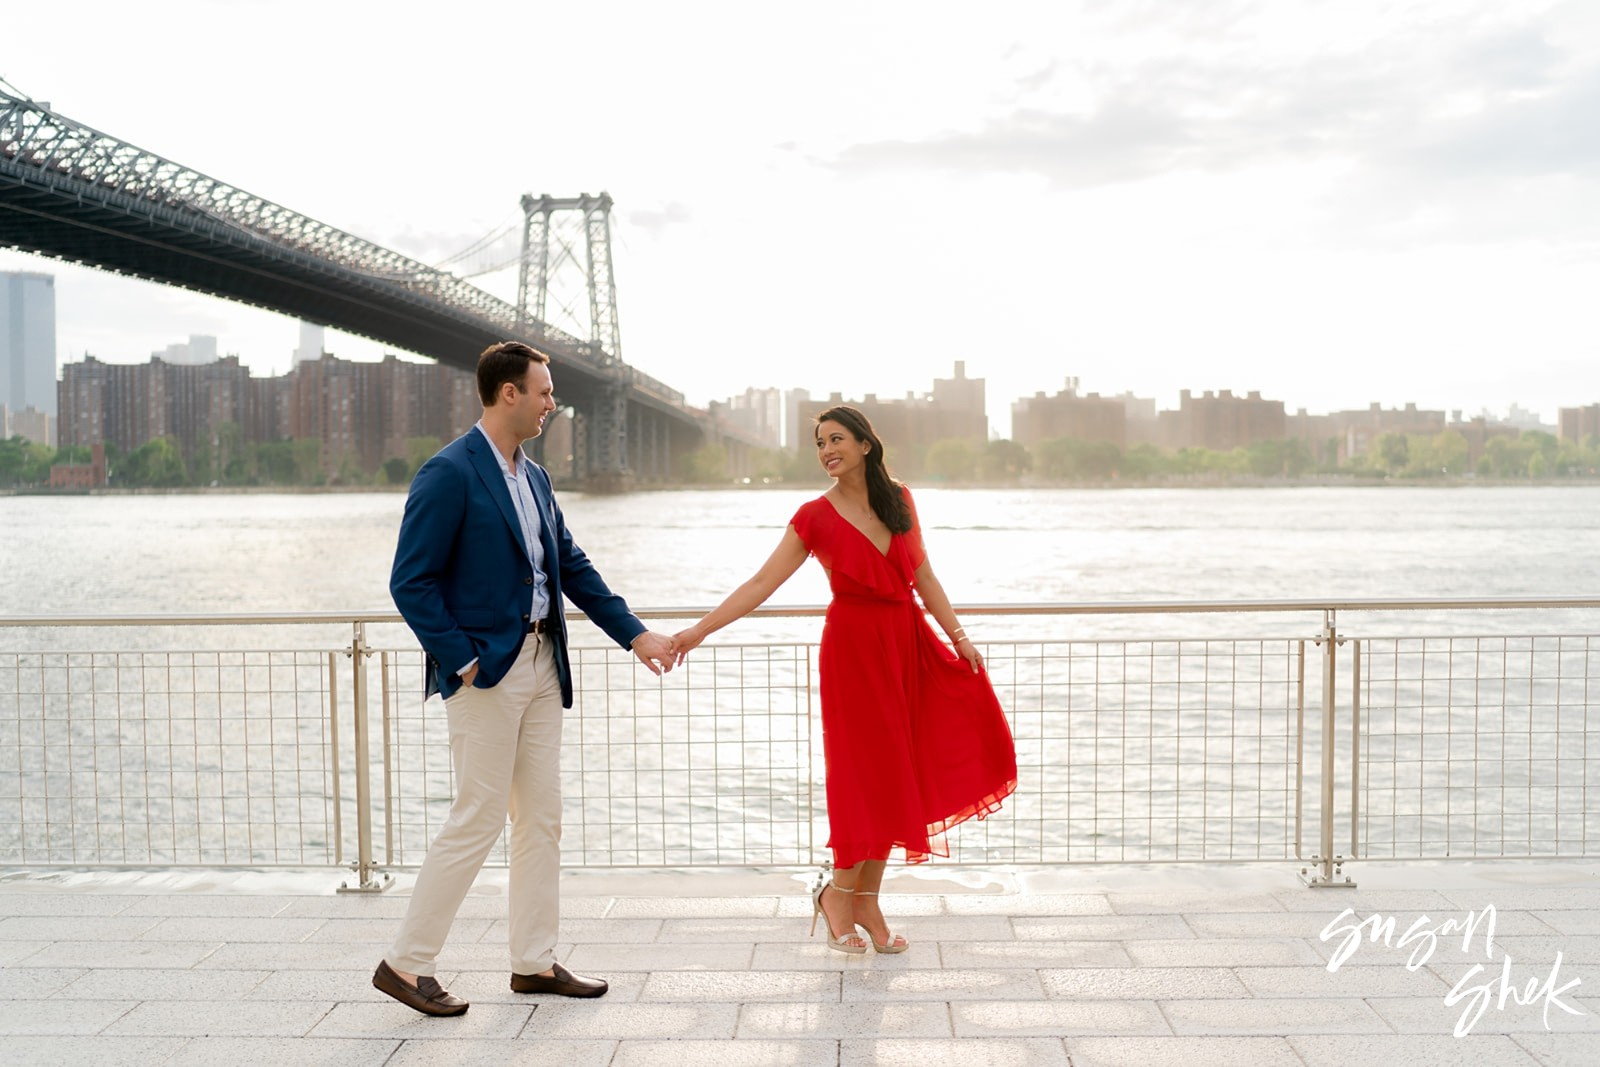 Domino Park engagement shoot, Engagement Shoot, NYC Engagement Photographer, Engagement Session, Engagement Photography, Engagement Photographer, NYC Wedding Photographer